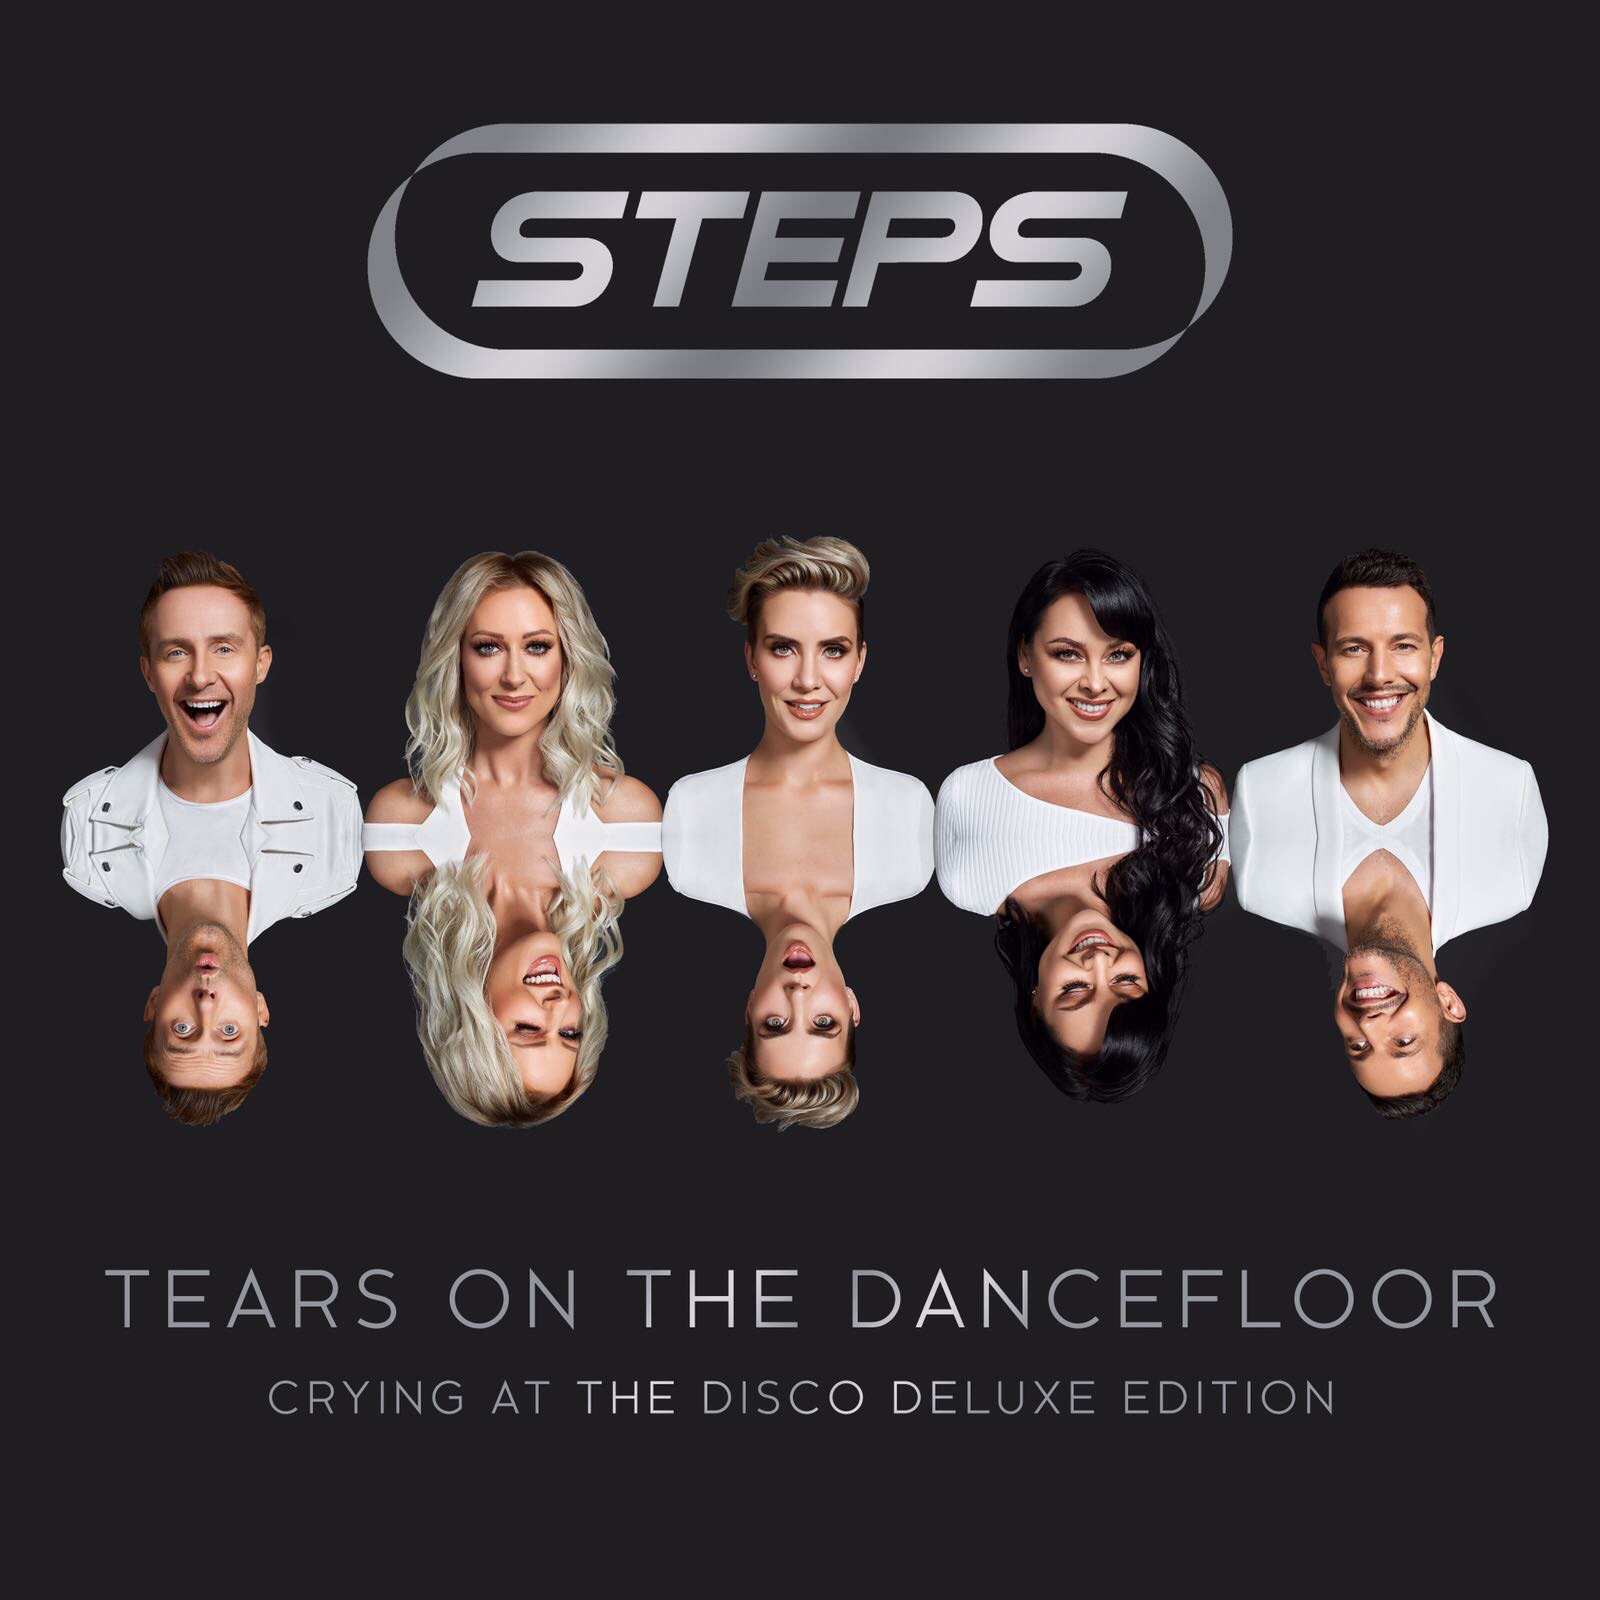 #20YearsOfSteps isn't over yet! We're SO excited to announce Tears On The Dancef.... https://t.co/ncVWDbQrZG https://t.co/mdcT8SYwsr